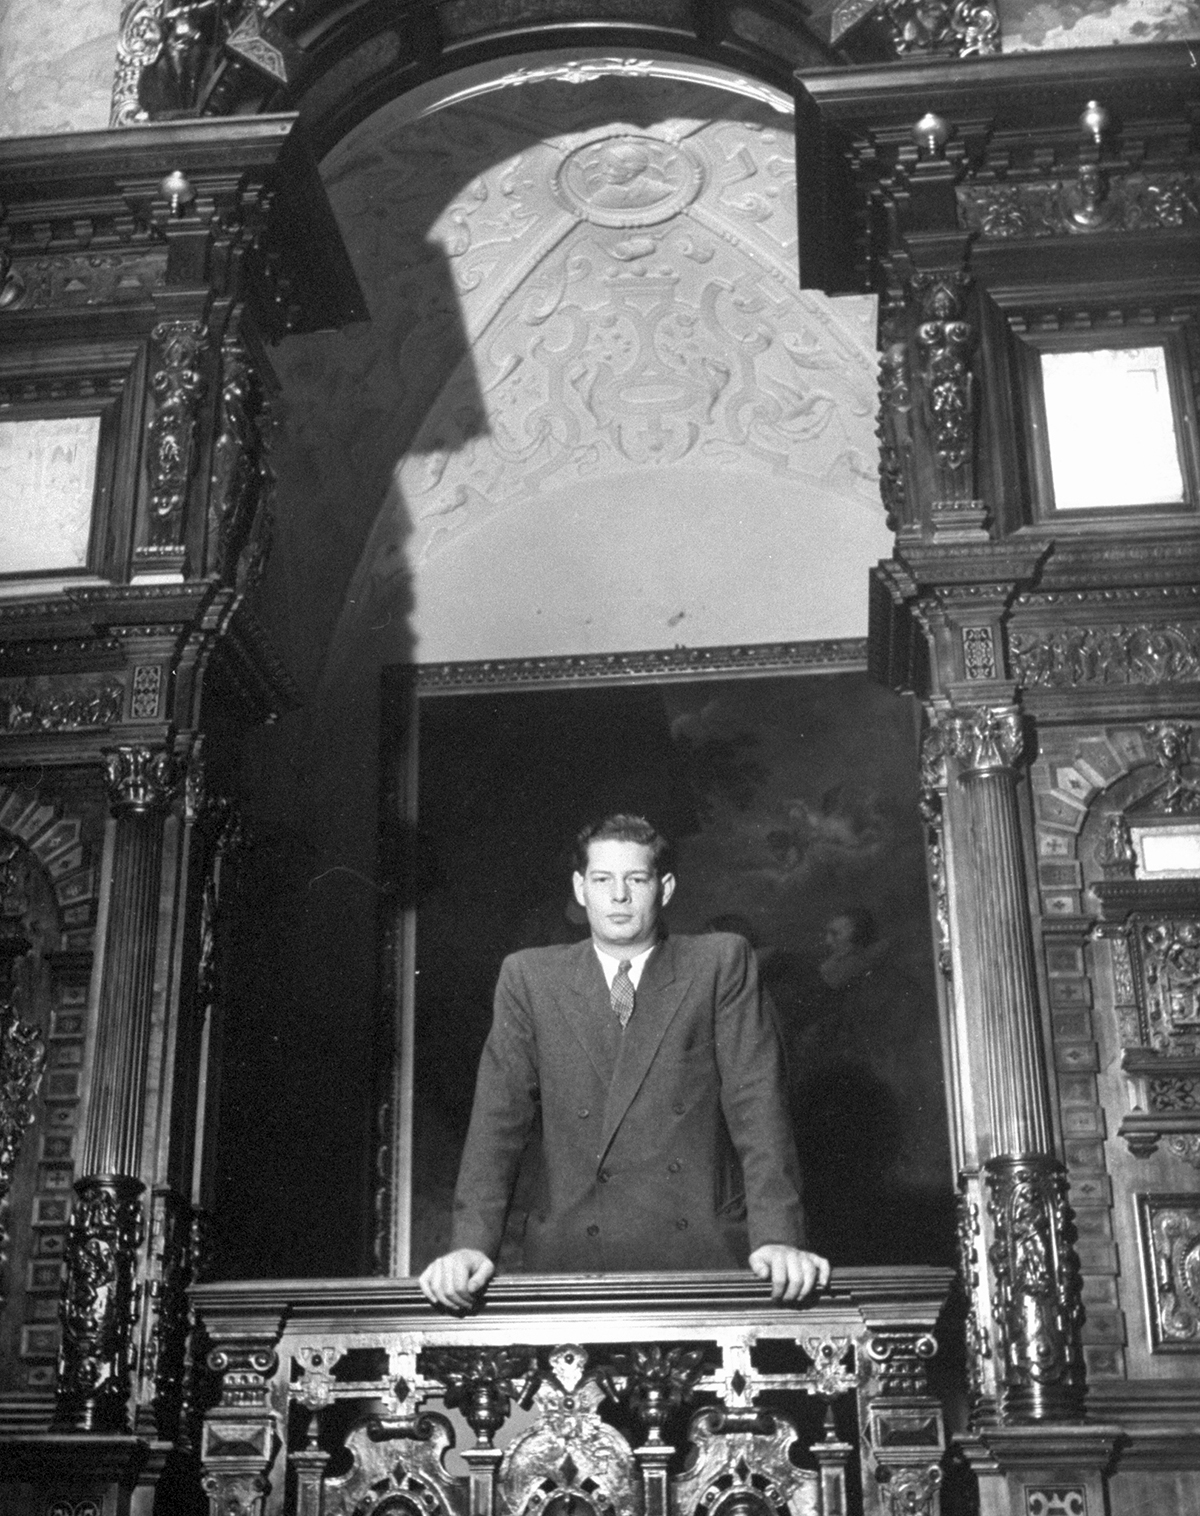 April 1946: Rumanian King Michael leaning over balcony looking into large hall in Sinaia palace.  (Photo by John Phillips/The LIFE Picture Collection/Getty Images)